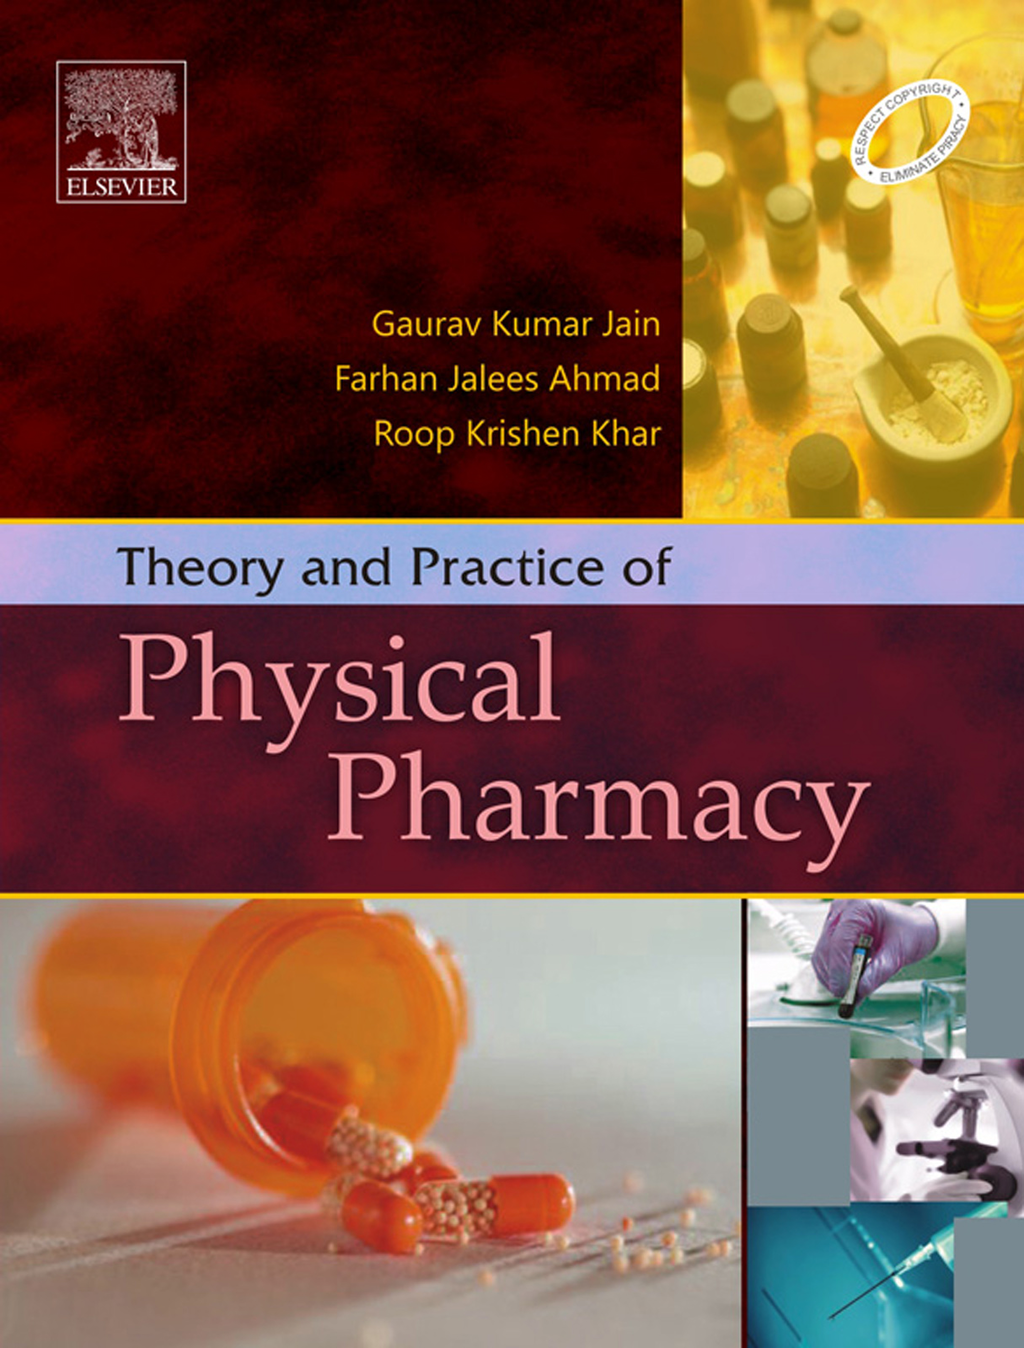 Theory and Practice of Physical Pharmacy